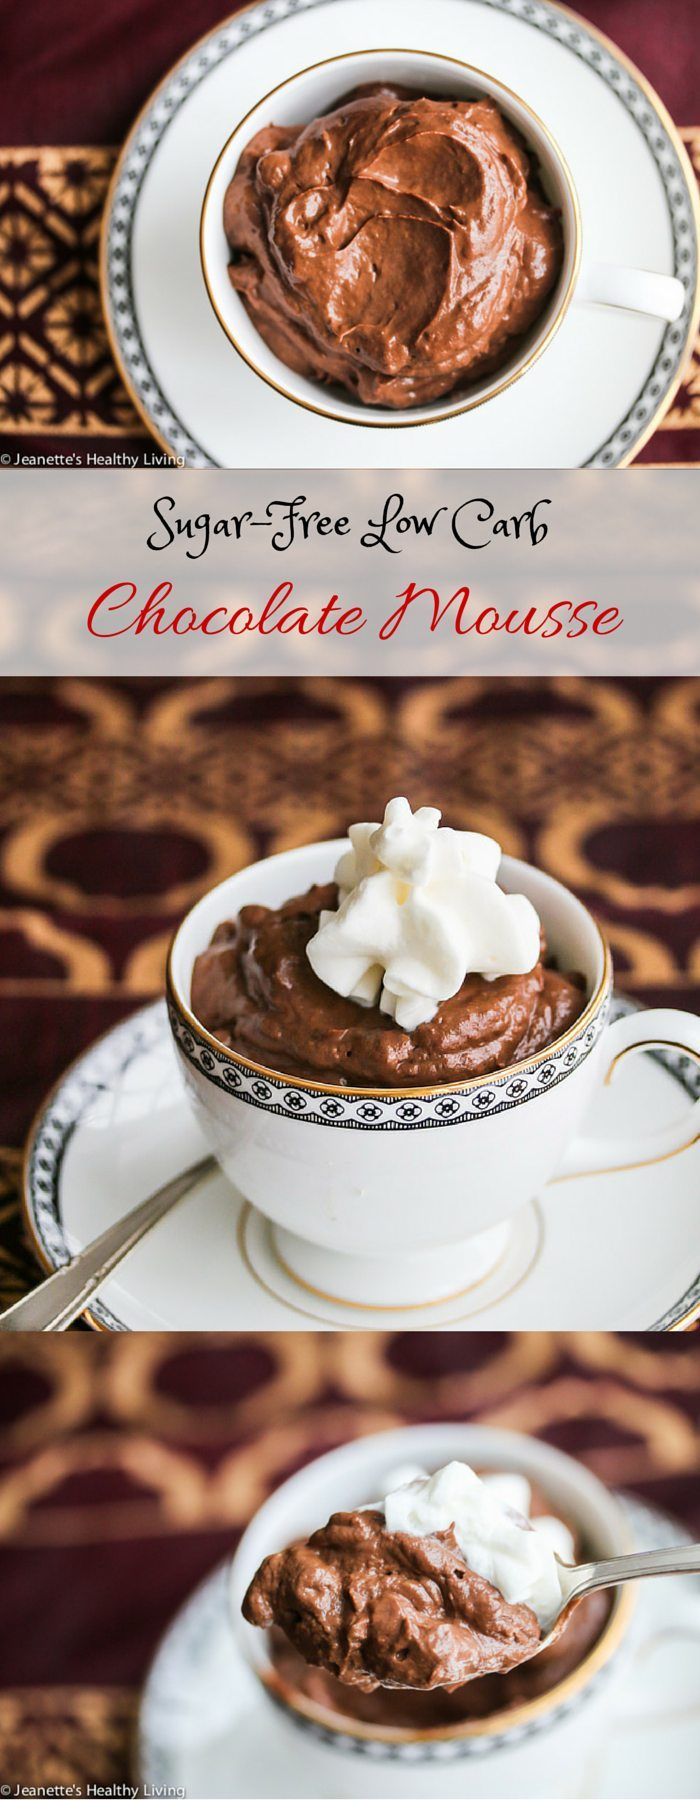 Sugar-Free Low-Carb Dairy-Free Chocolate Mousse Recipe - only 145 calories! Creamy and delicious, this is a secretly healthy dessert ~ http://jeanetteshealthyliving.com